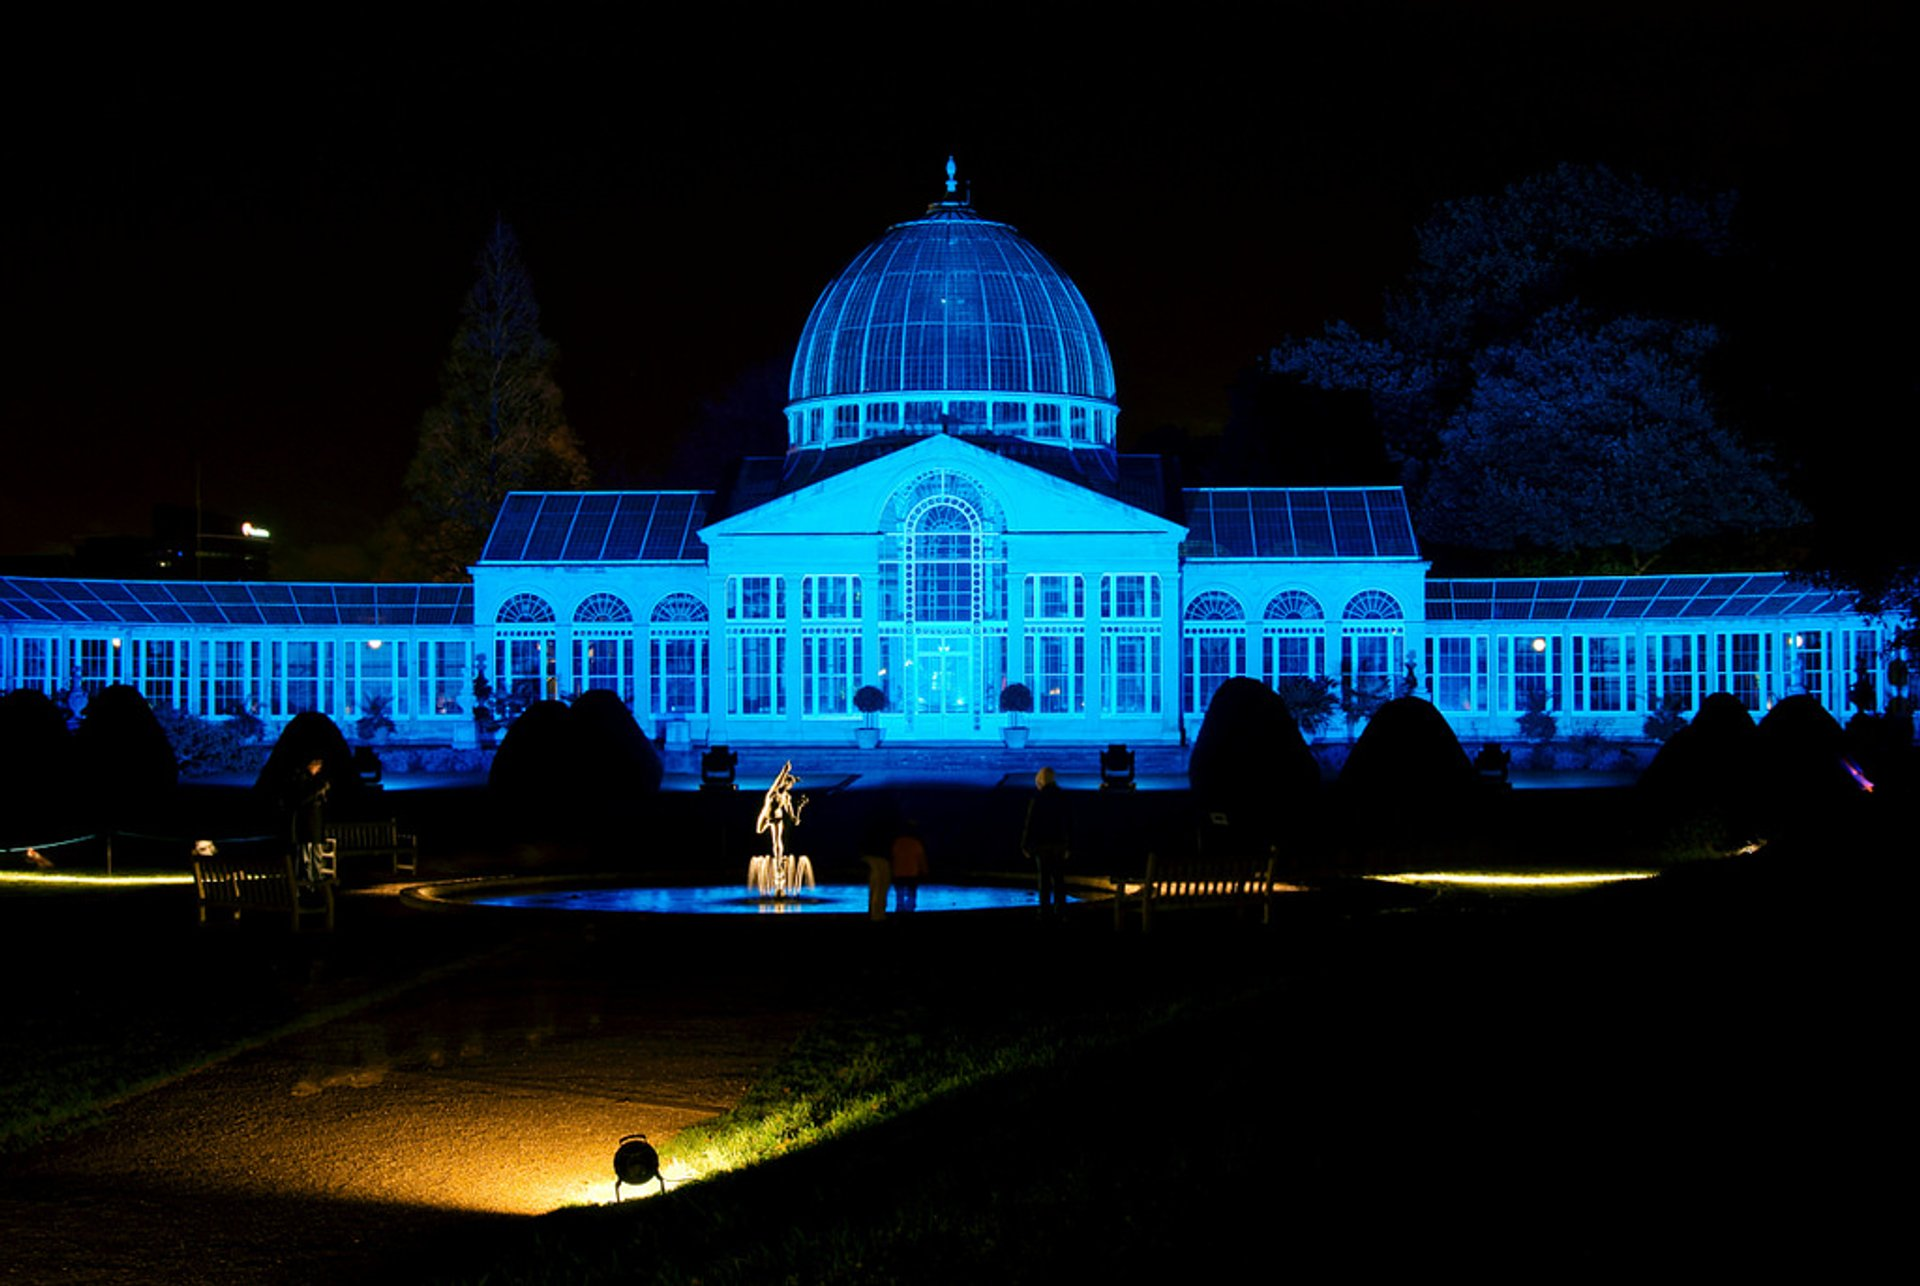 Enchanted Woodland at Syon Park in London 2020 - Best Time